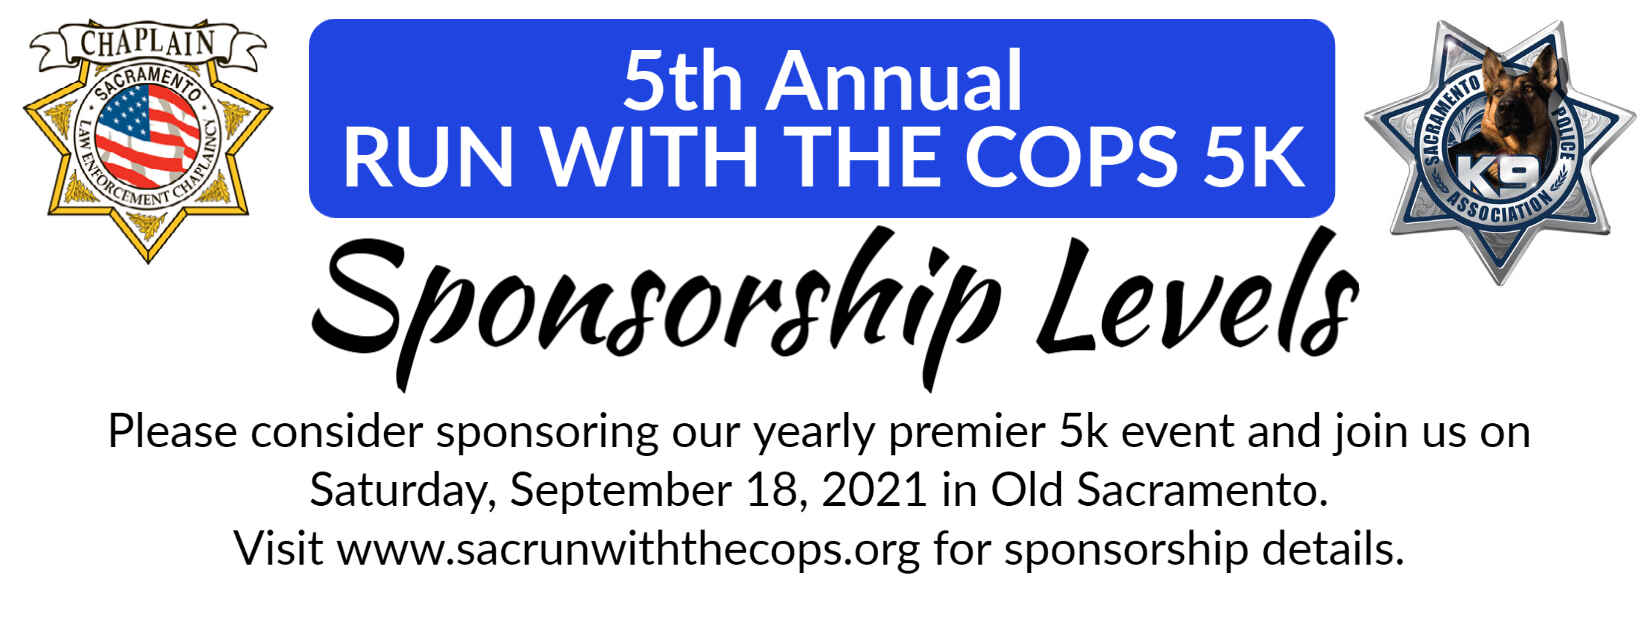 5th Annual Run with the Cops 5k image